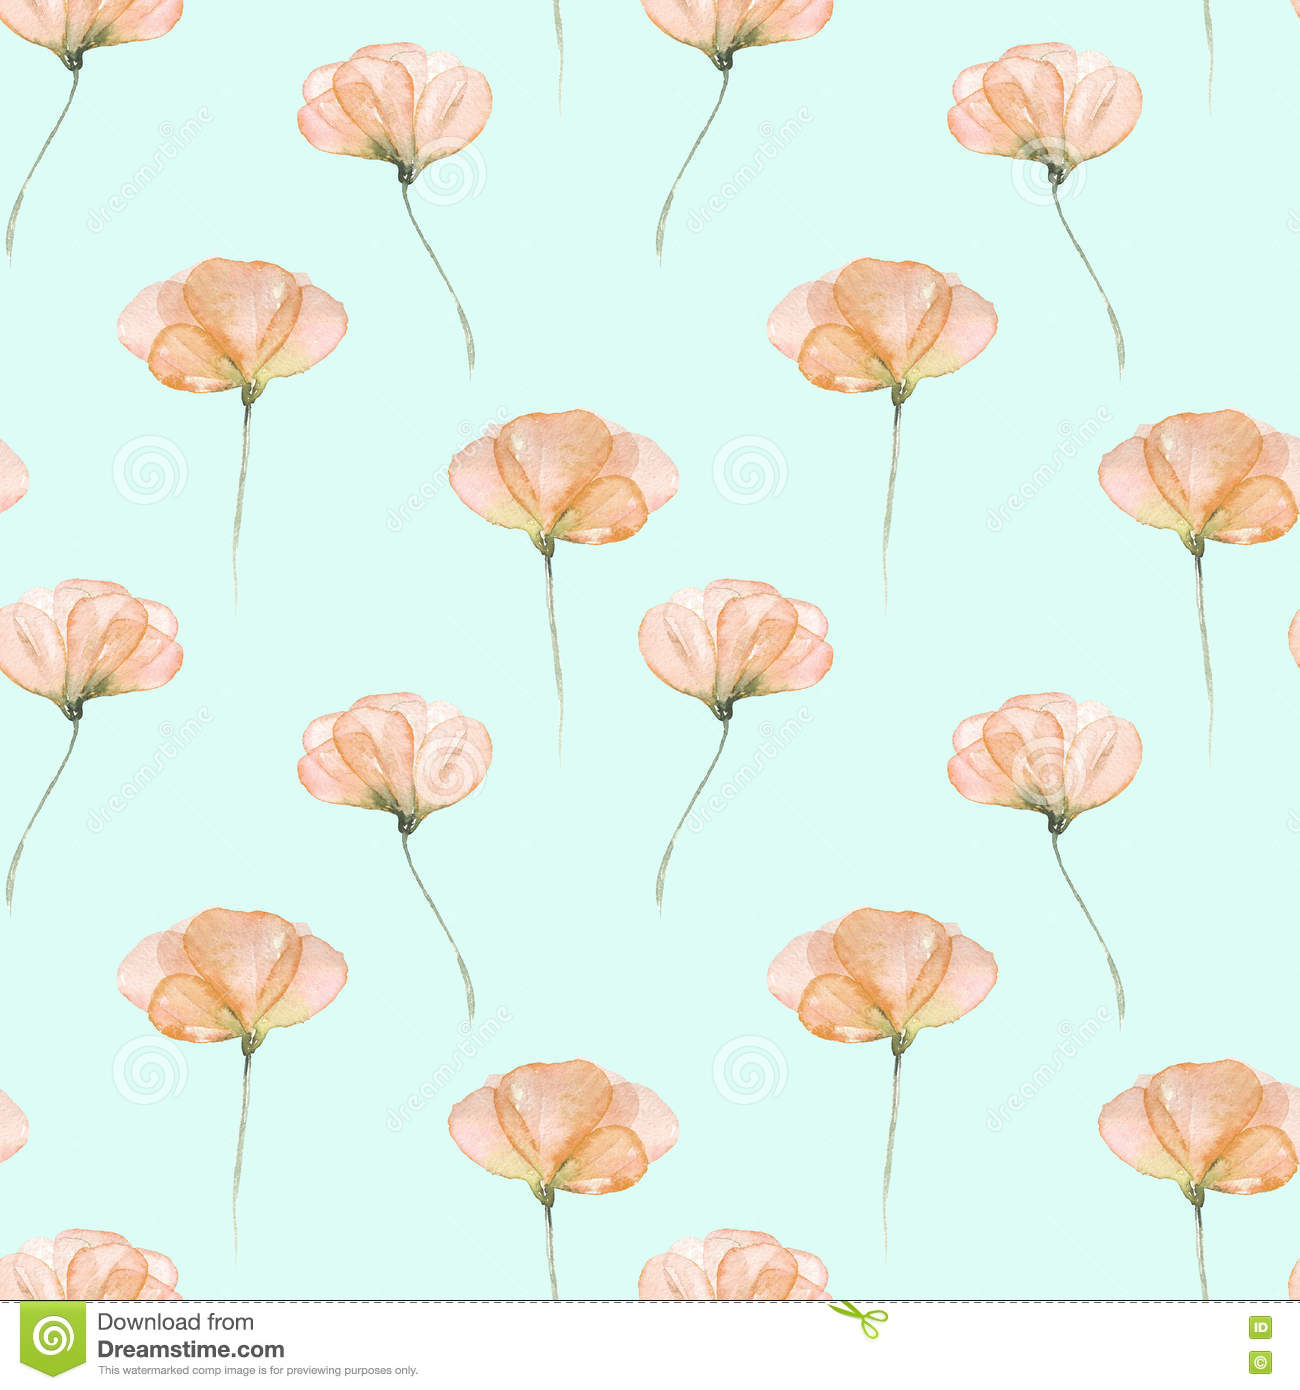 Seamless Floral Pattern With Pink Tender Flowers Stock Illustration